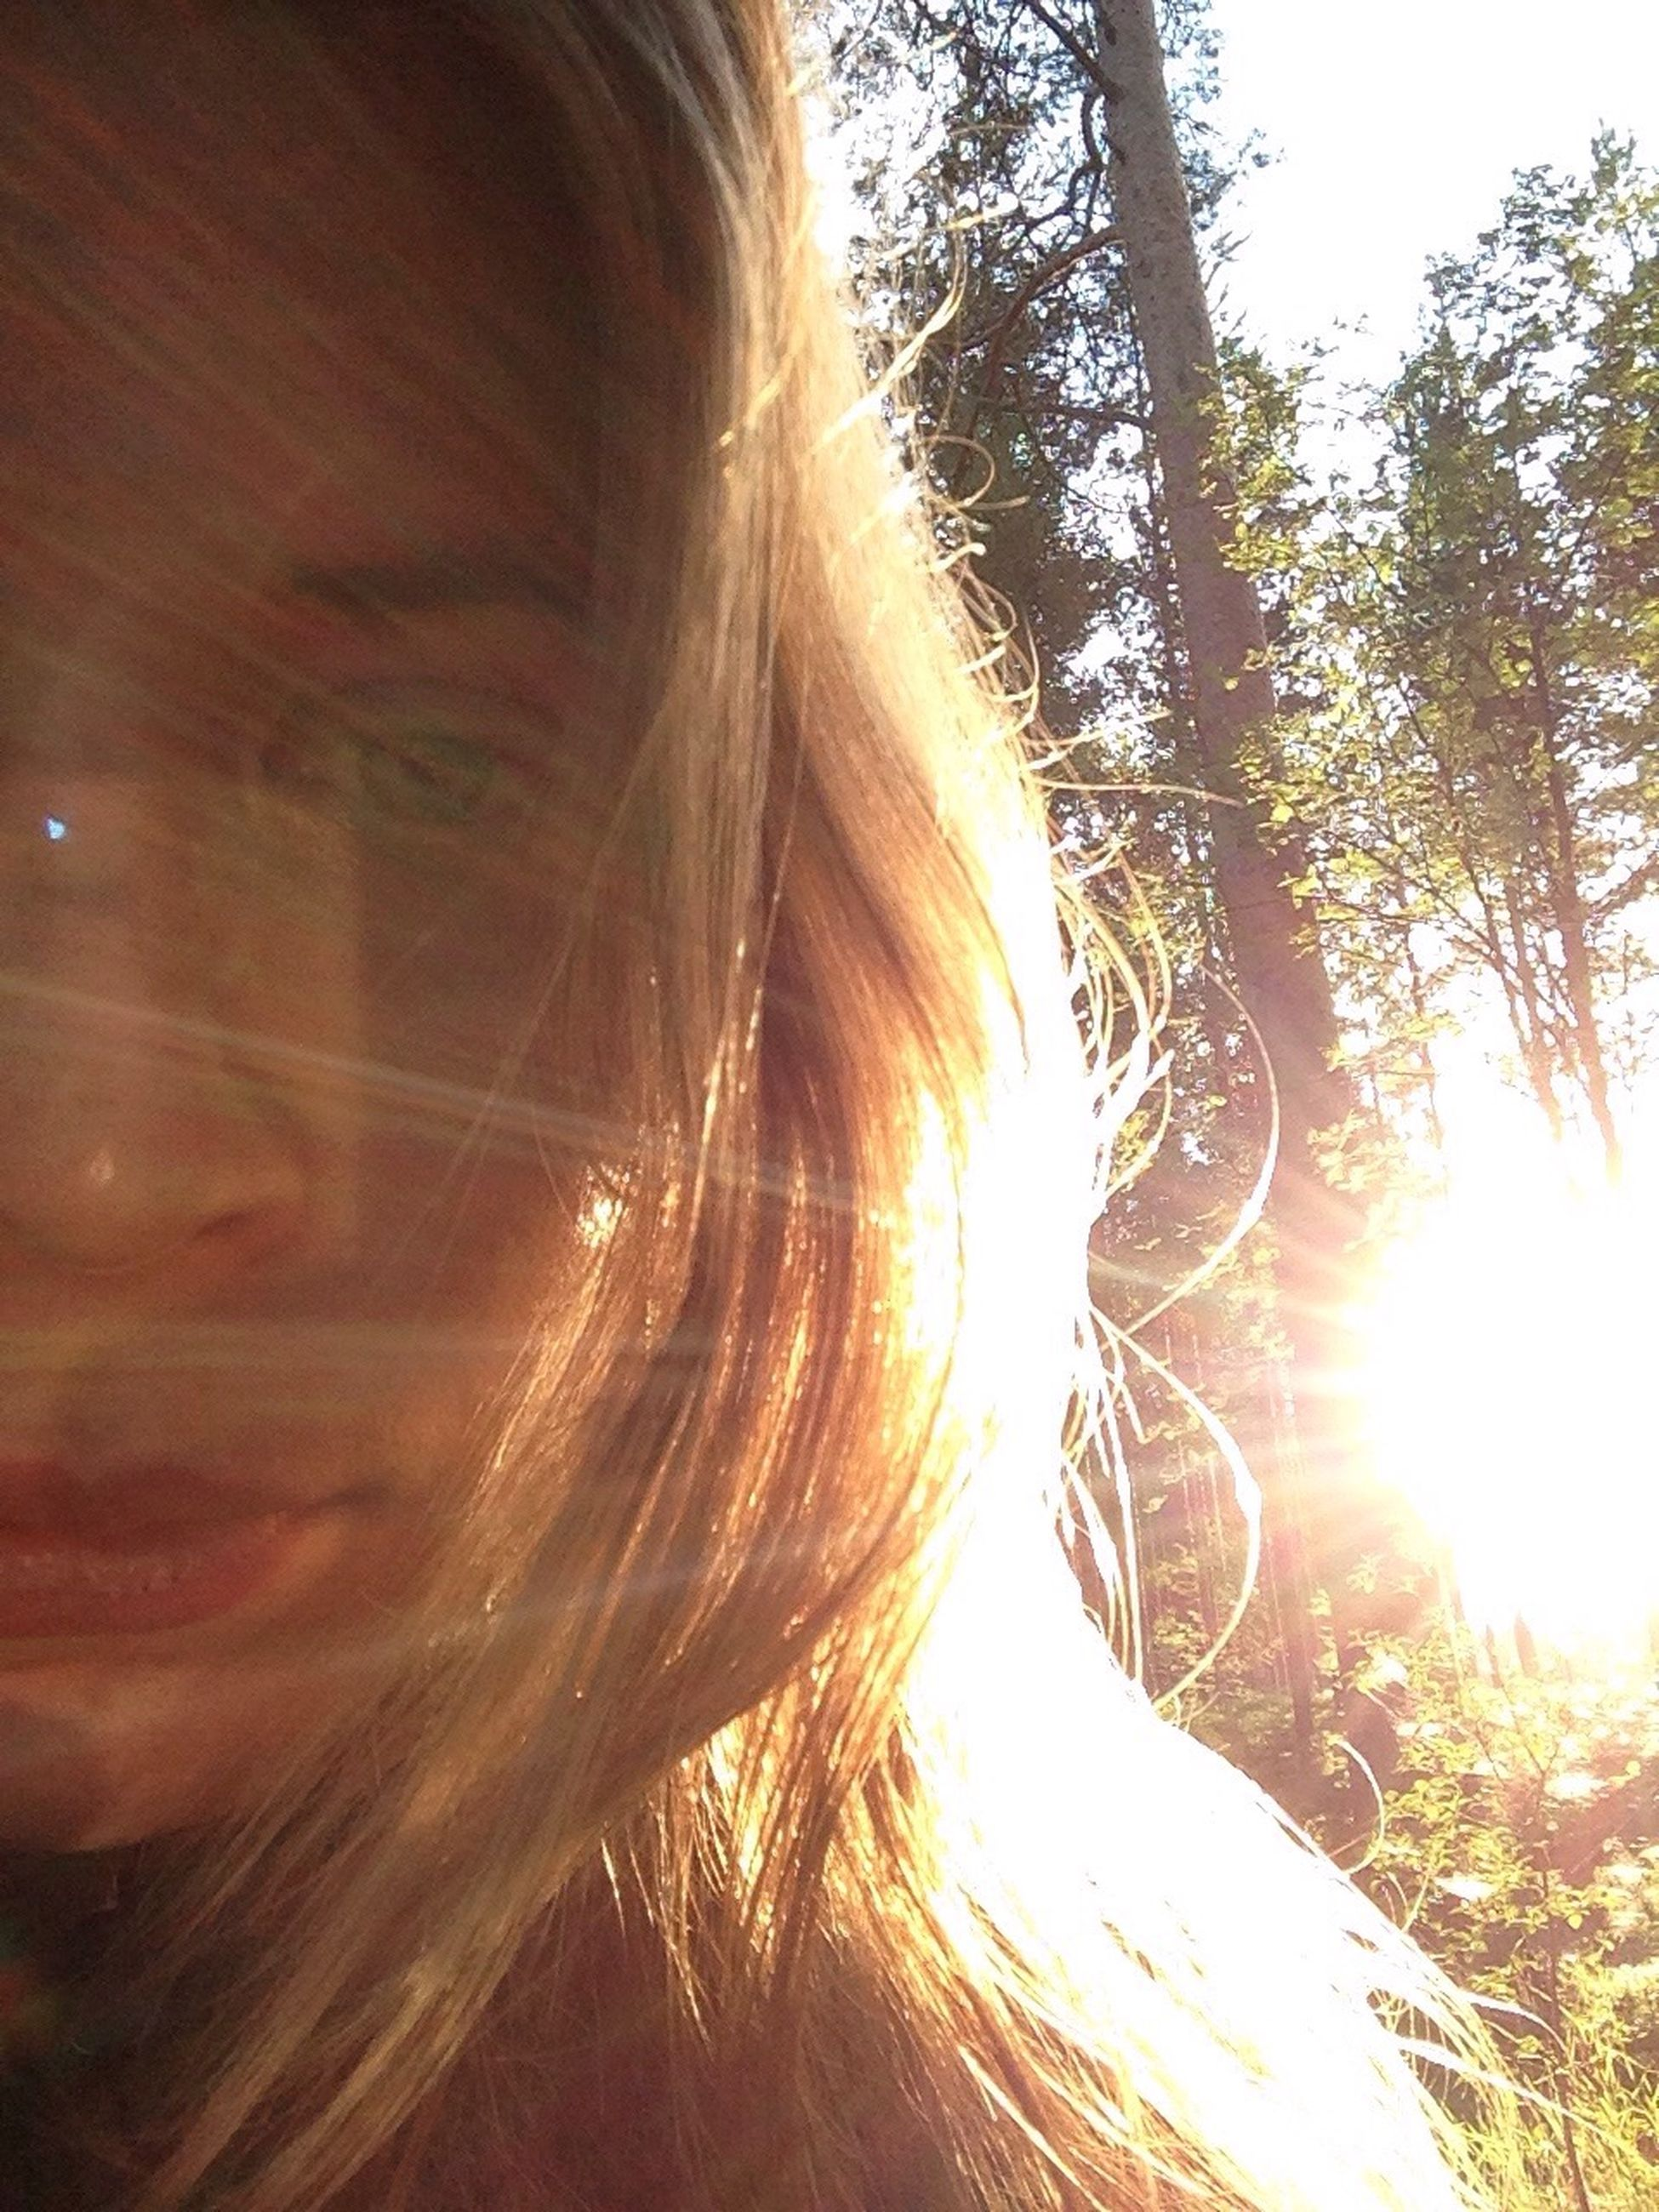 long hair, sunlight, lifestyles, sun, young women, leisure activity, sunbeam, headshot, young adult, lens flare, tree, person, close-up, human hair, sunset, outdoors, nature